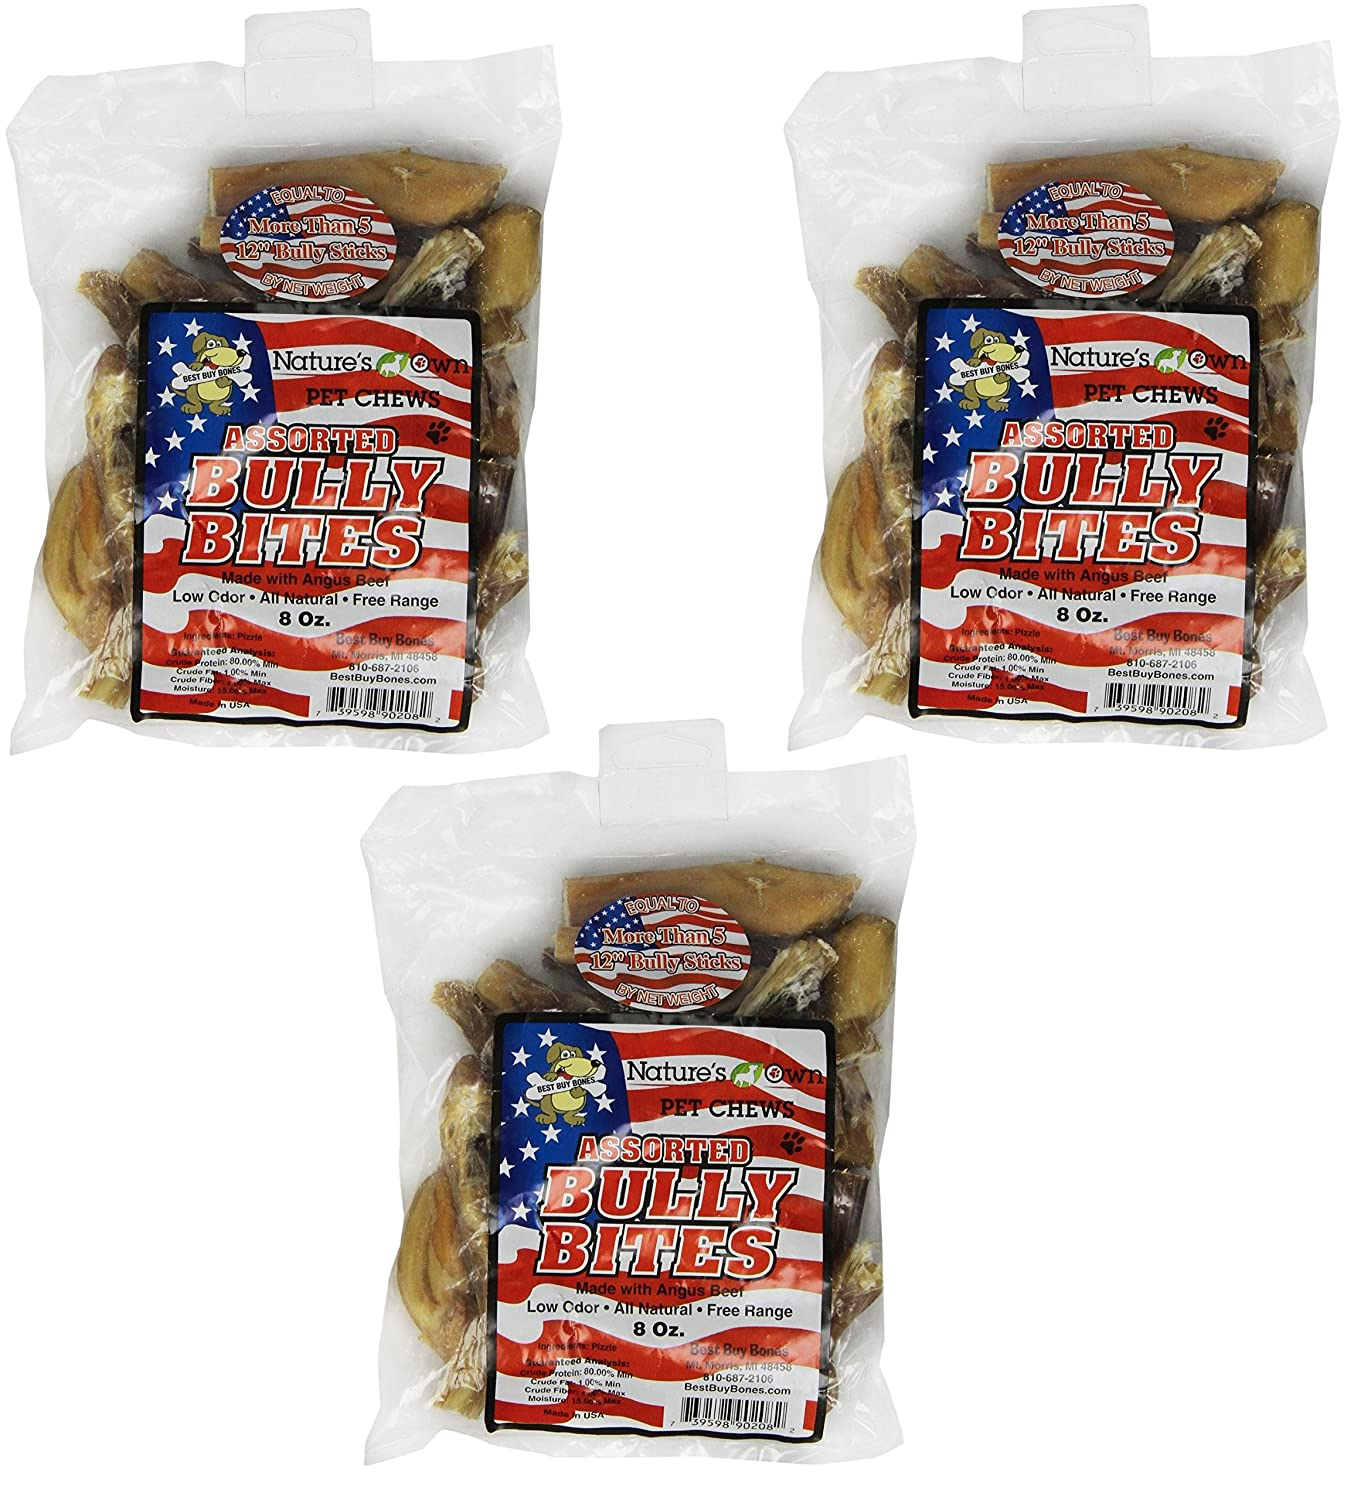 Best Buy Bones USA Made Bully Bites, 8-Ounce Bag Healthy Pet Chews for Dogs (3 Pack)